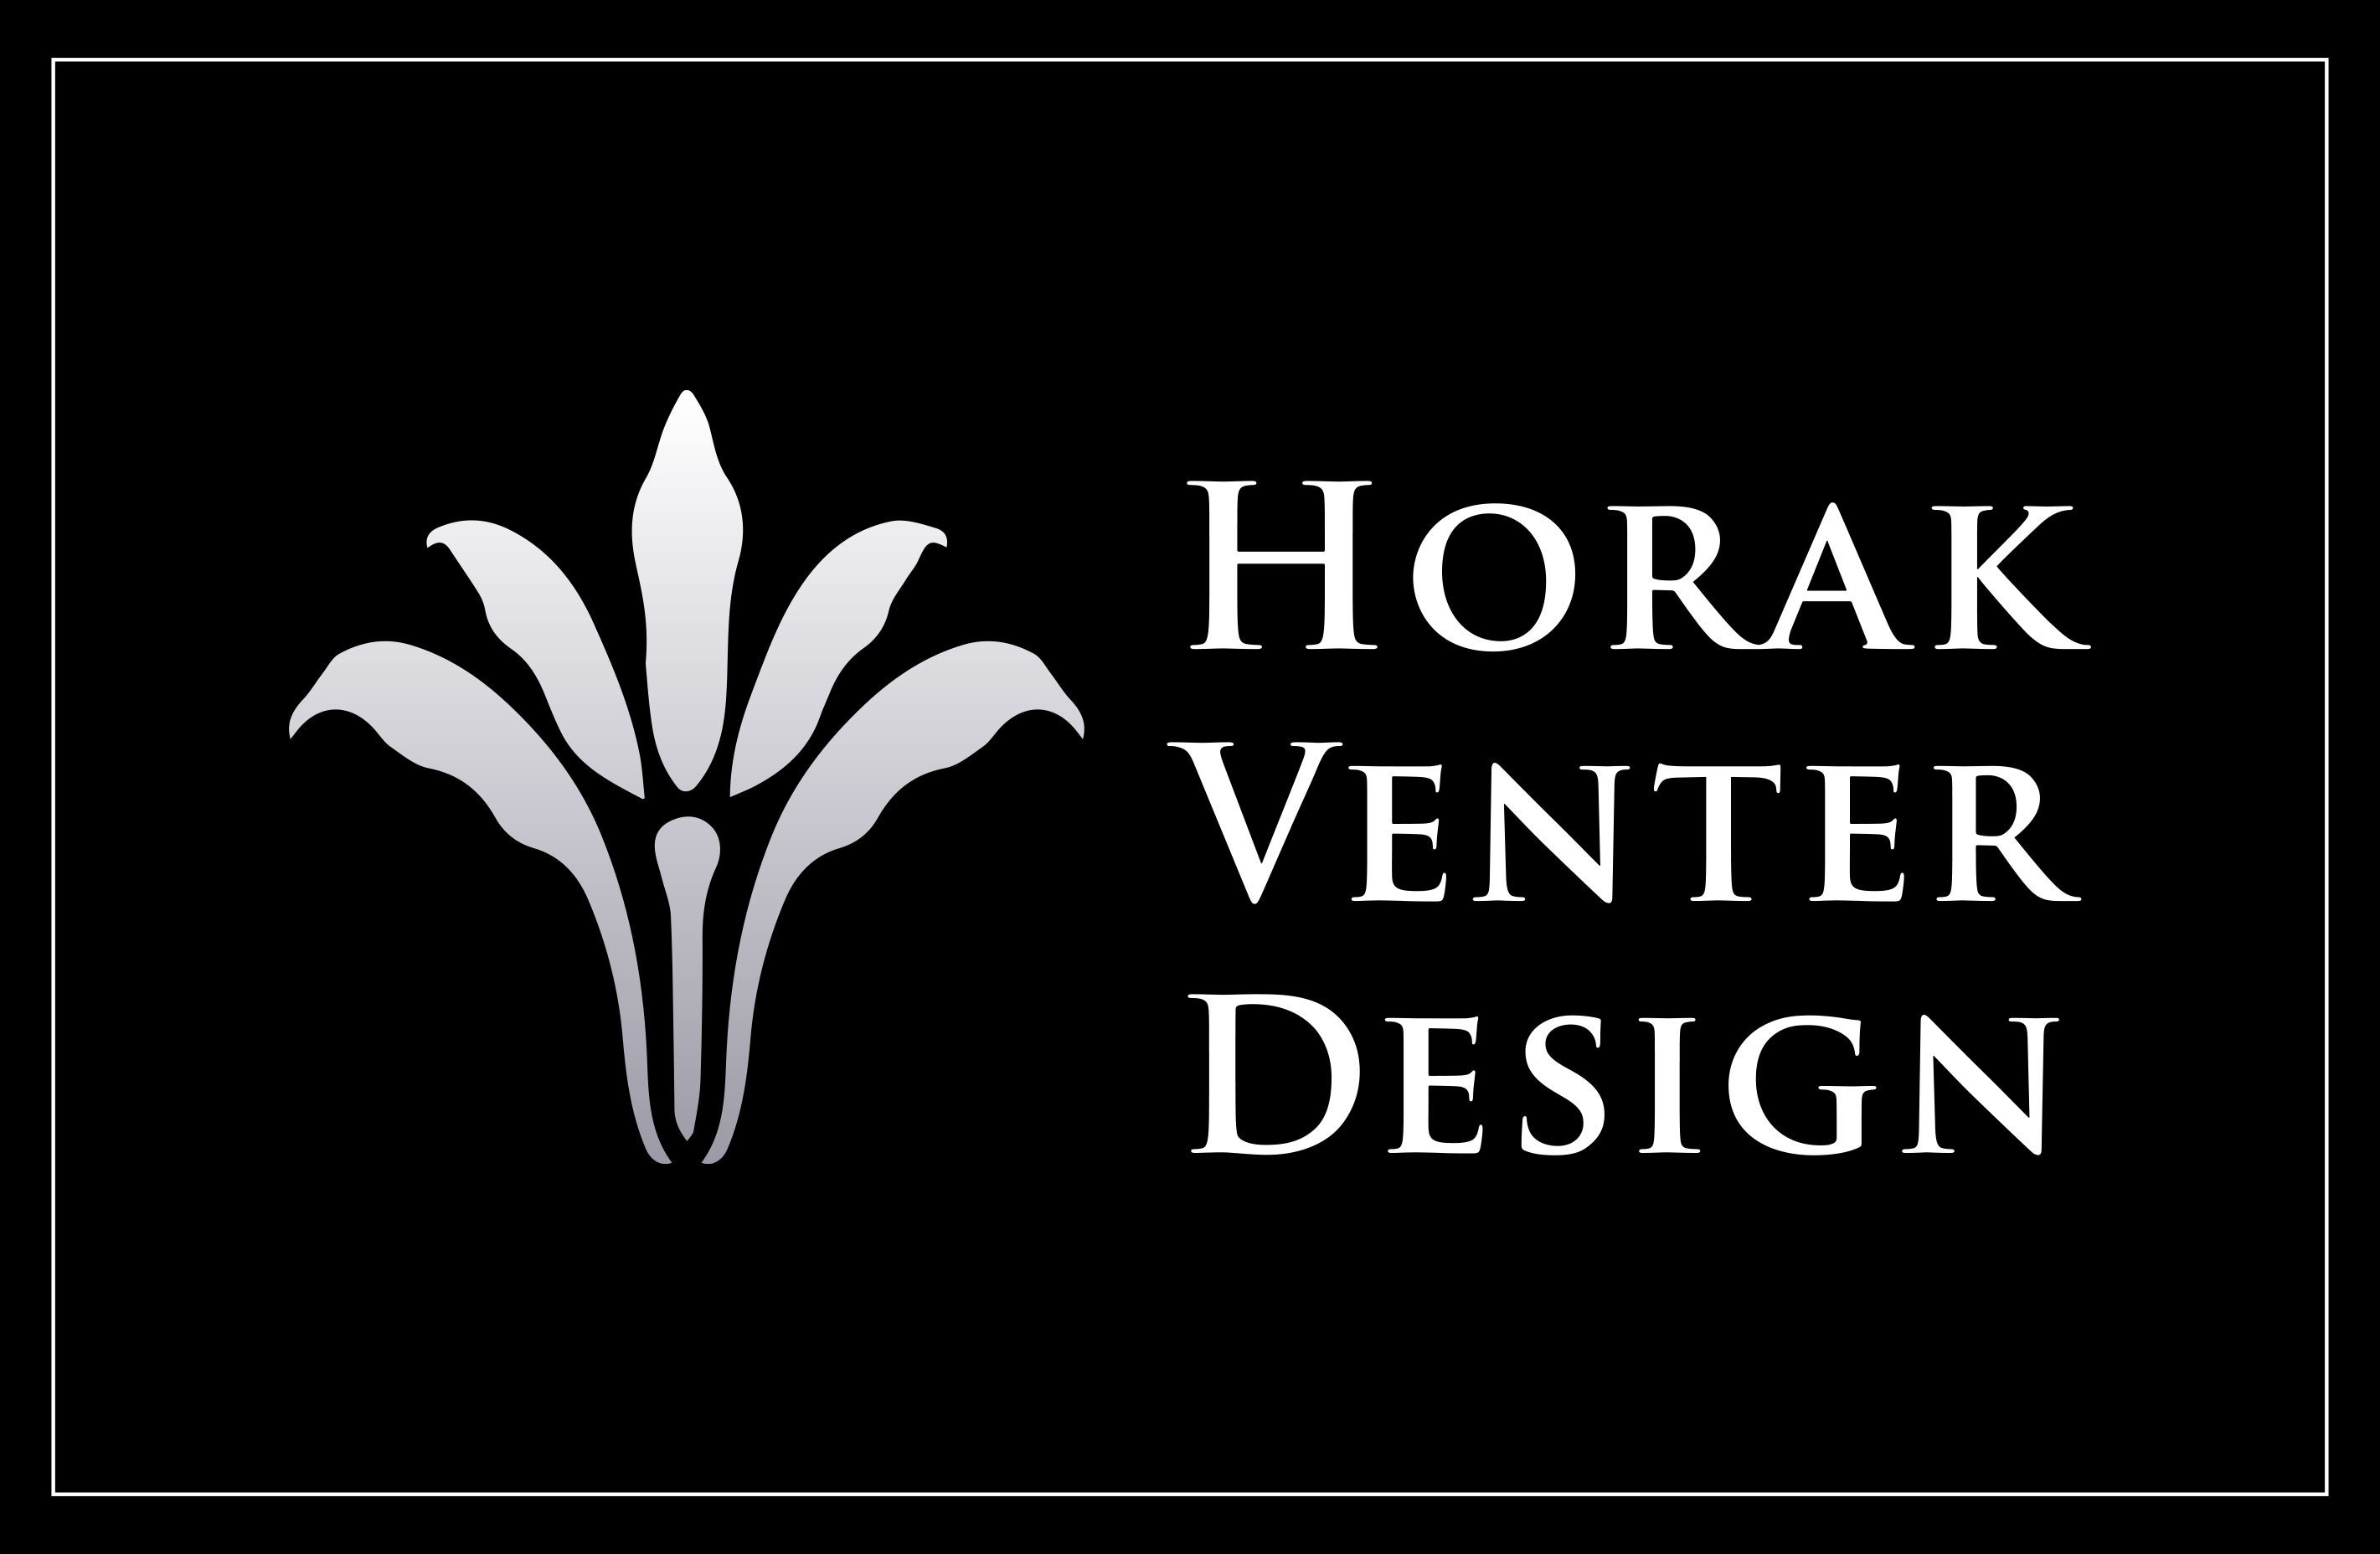 Horak Venter